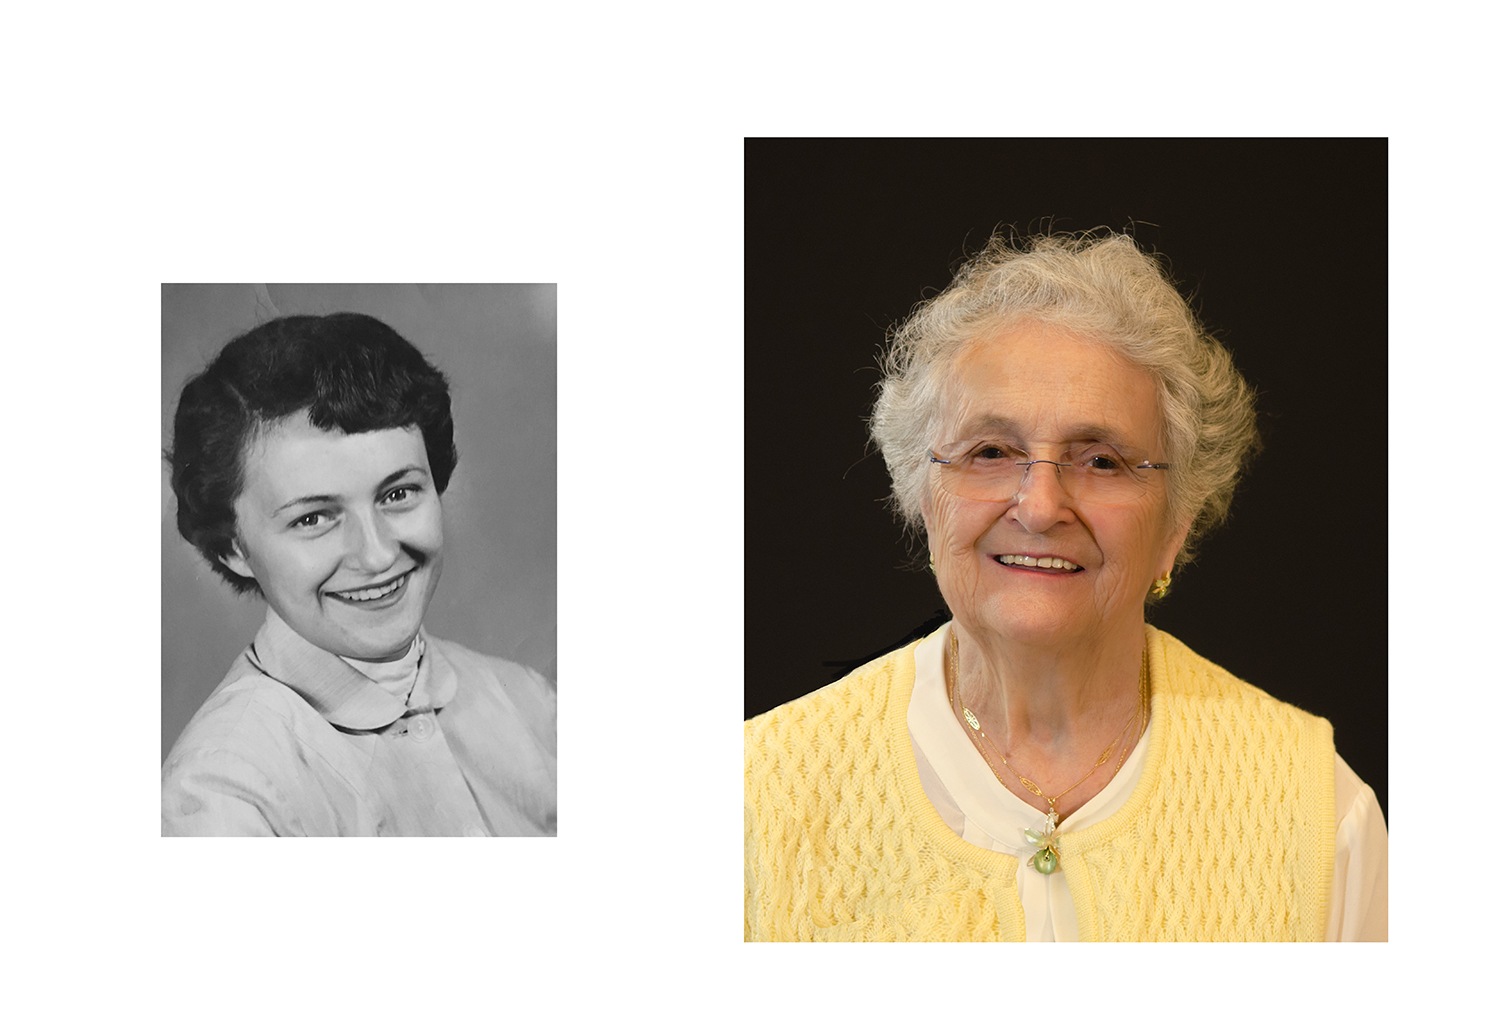 riely, Janet diptych.jpg